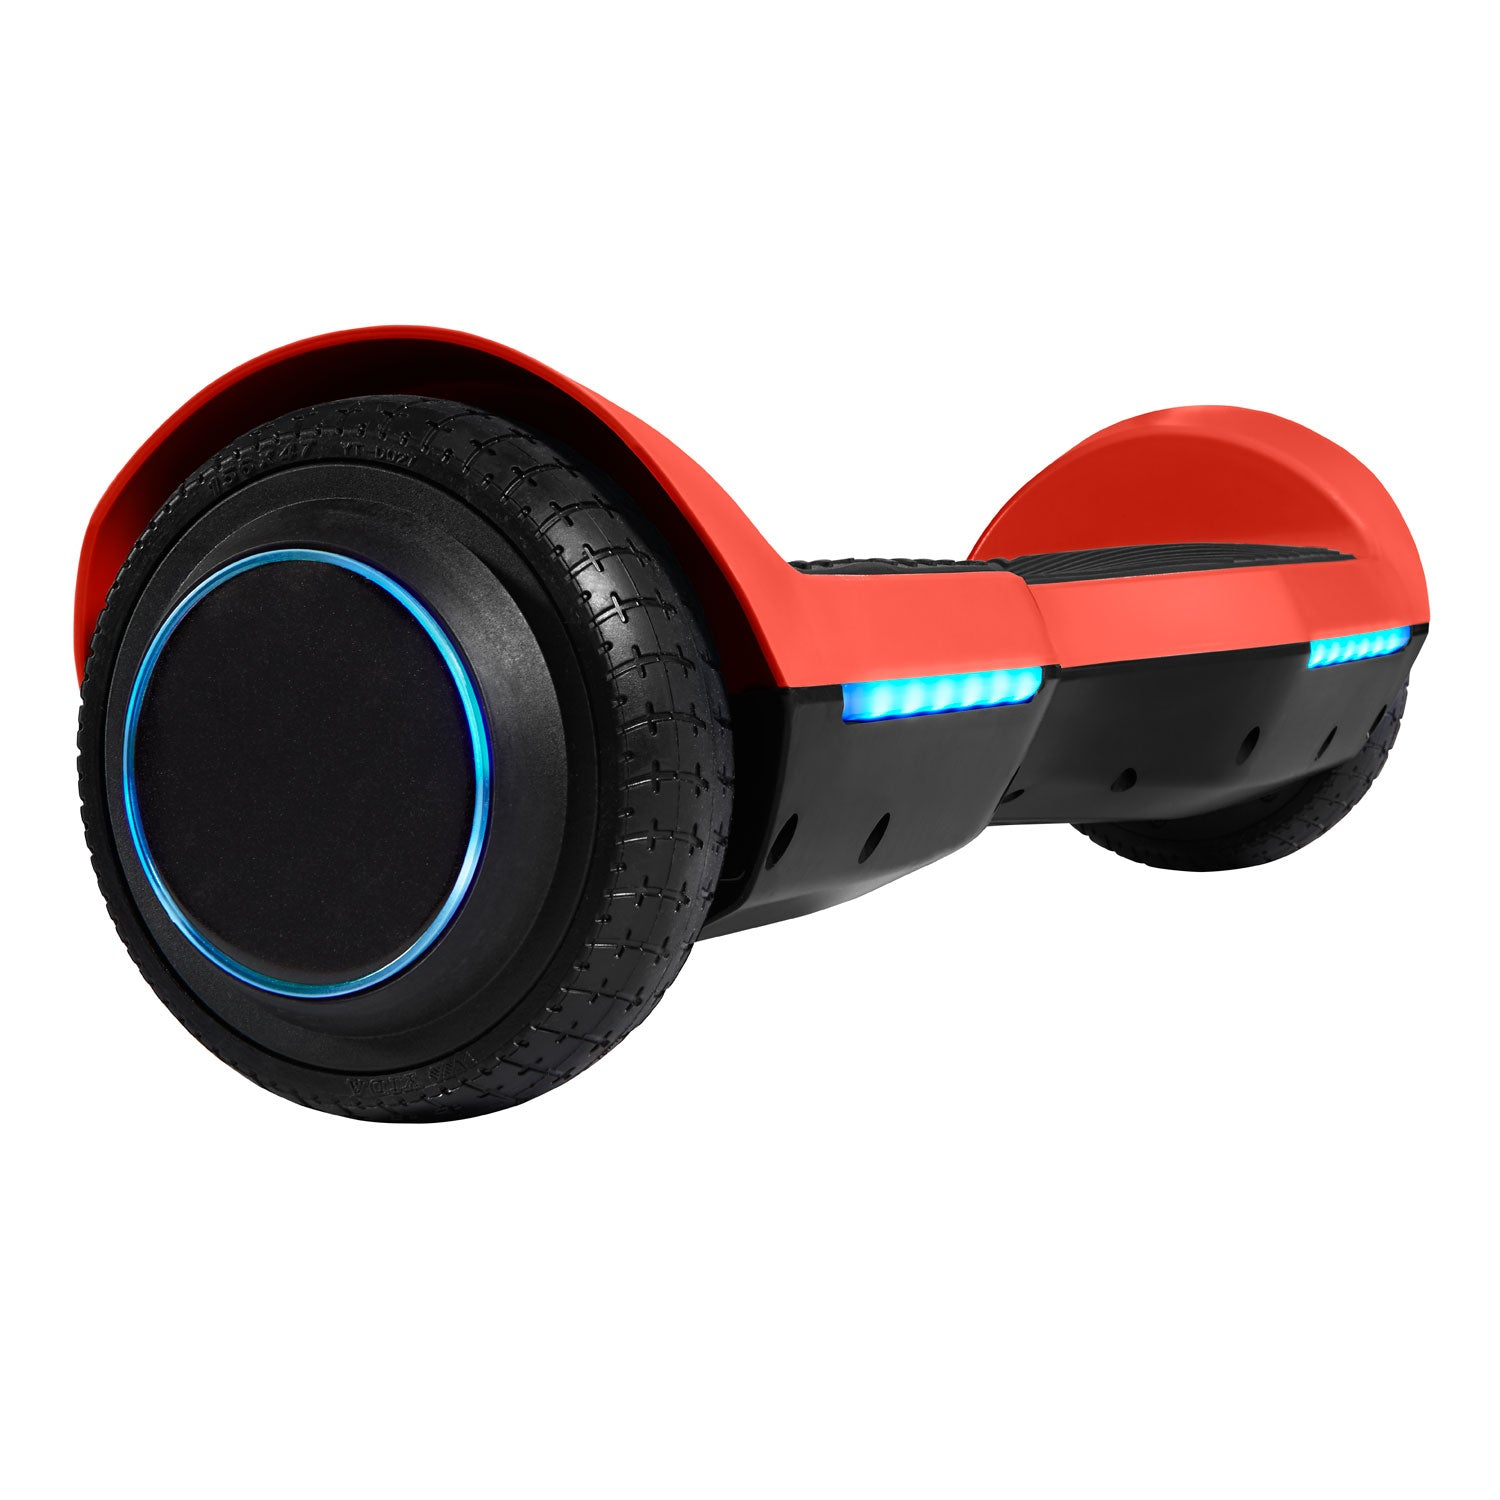 red Main image srx bluetooth hoverboard